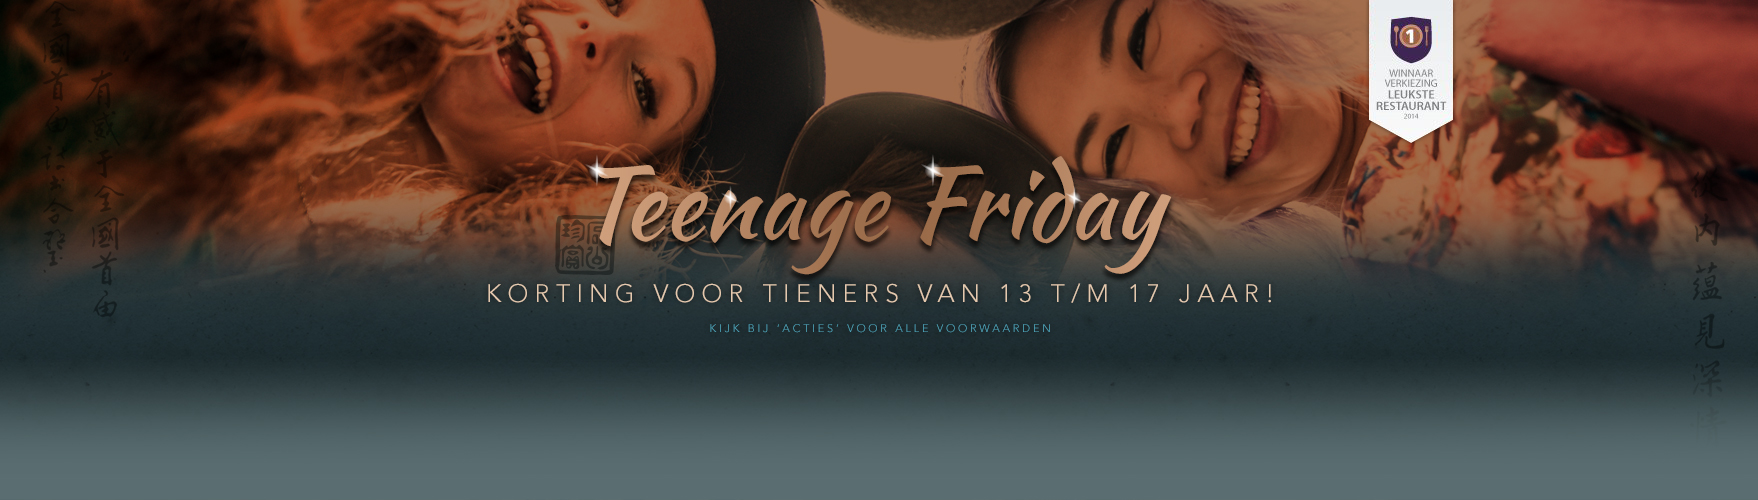 18044-EP-Slider-Teenage-Friday-Bentelo